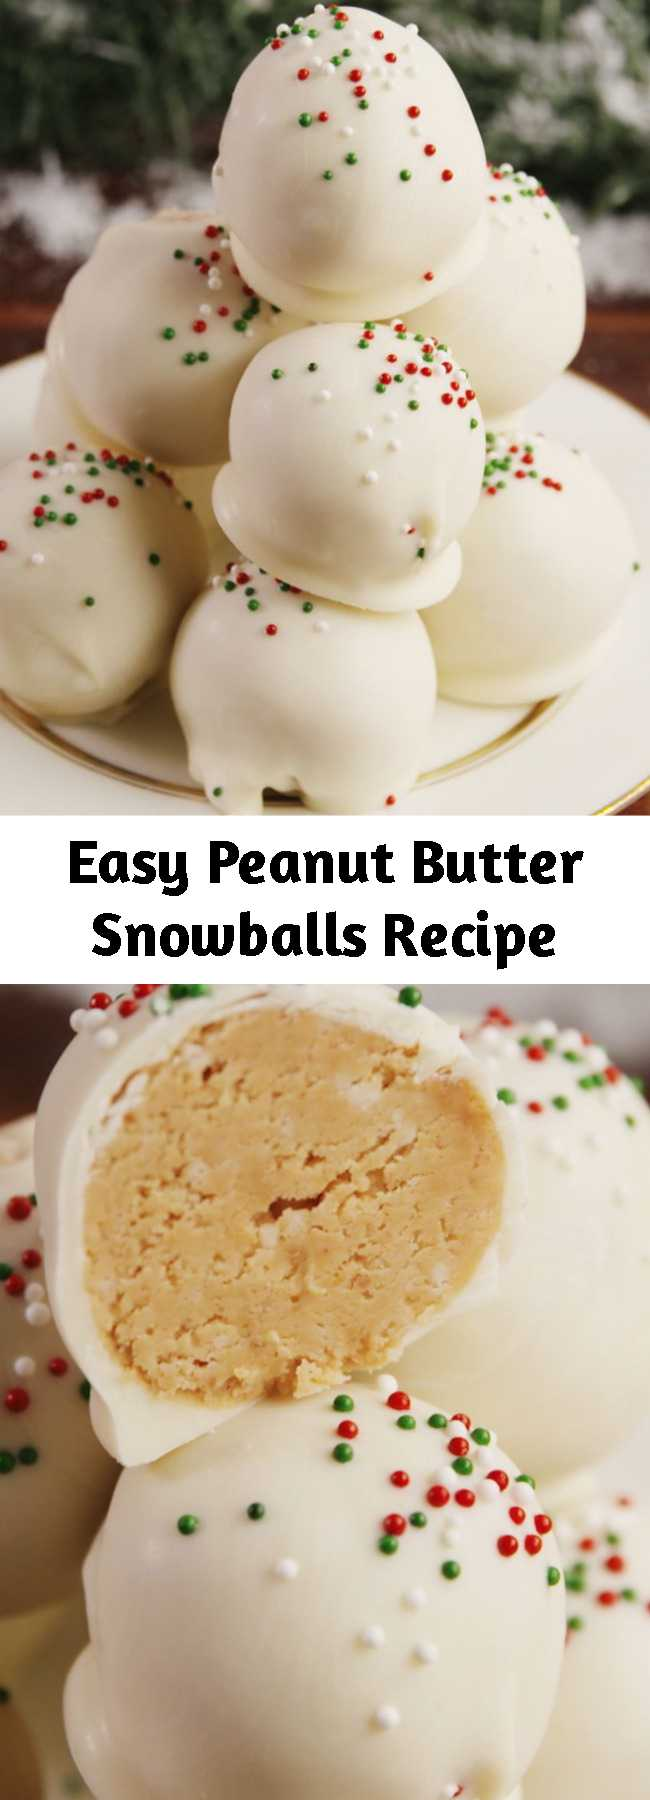 Easy Peanut Butter Snowballs Recipe - A snowball fight you actually want to be in. #food #holiday #christmas #easyrecipe #recipe #kids #inspiration #ideas